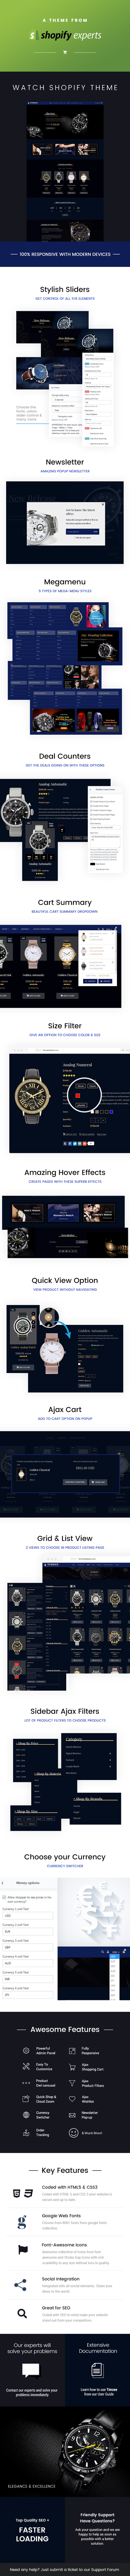 Timzee | Shopify Watch Store & Digital Clocks Theme - 1